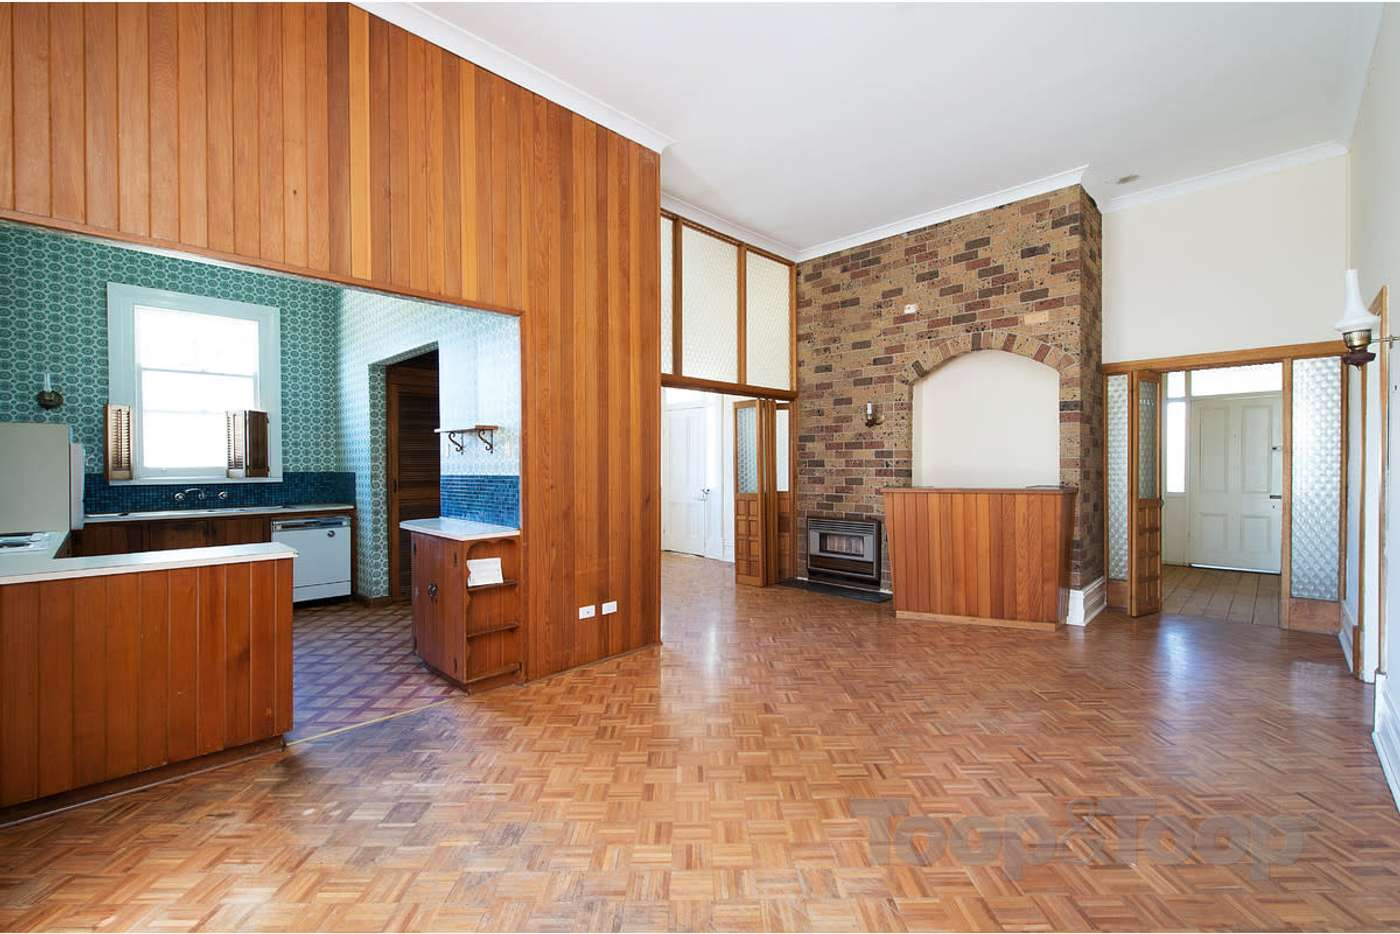 Sixth view of Homely house listing, 29 Waverley Street, Largs Bay SA 5016